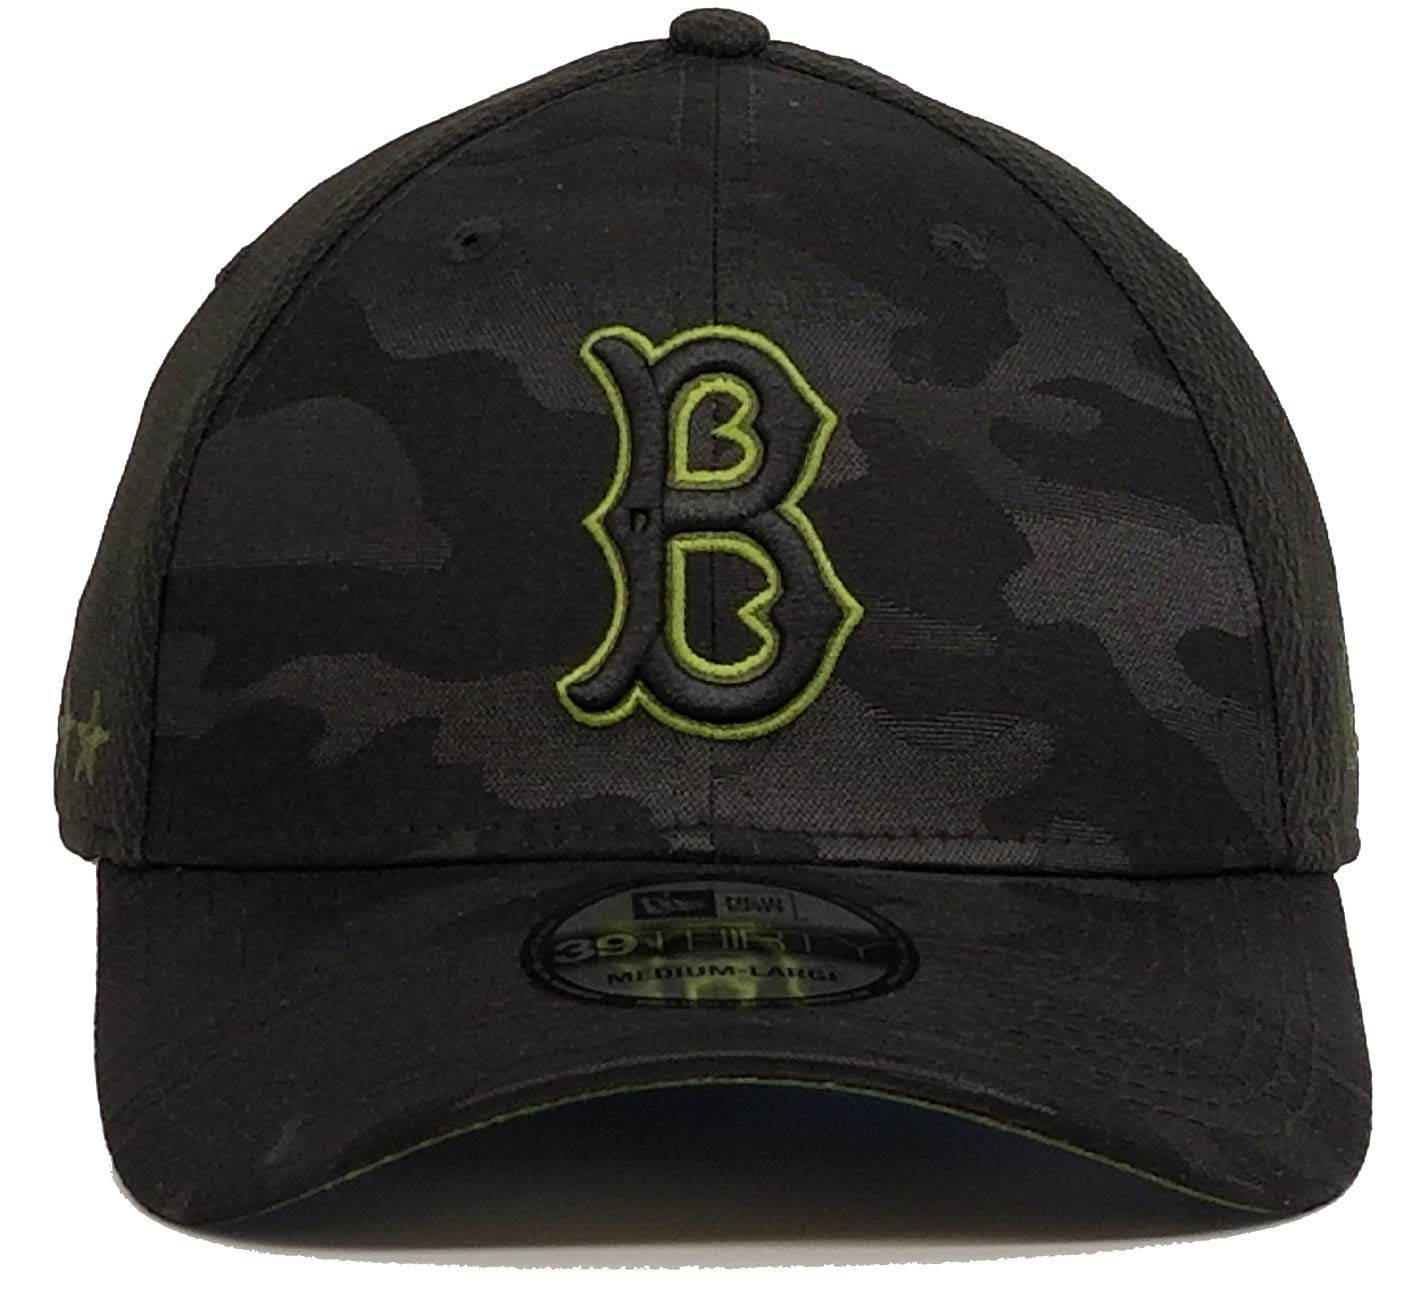 Amazon.com   New Era Exclusive Authentic Brooklyn Dodgers Memorial Day  39Thirty Flexfit Hat Cap (Large XLarge)   Sports   Outdoors a30fcf955ef